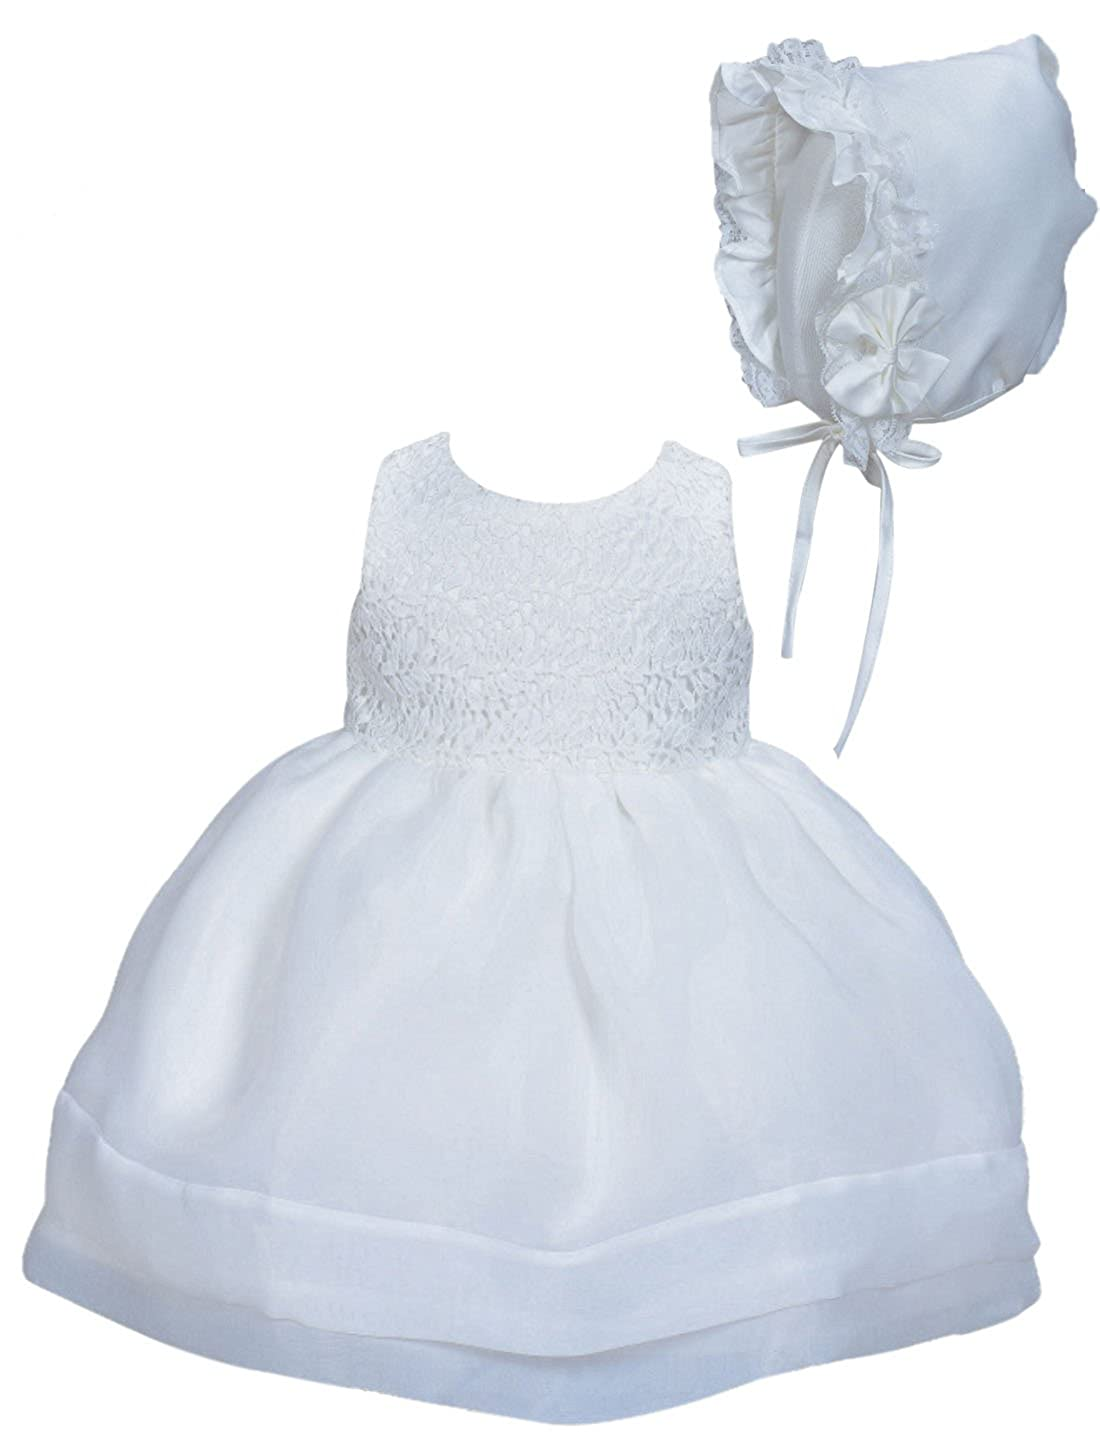 Cinda Baby Girls' Lace Christening Party Dress With Bonnet Happy Cherry